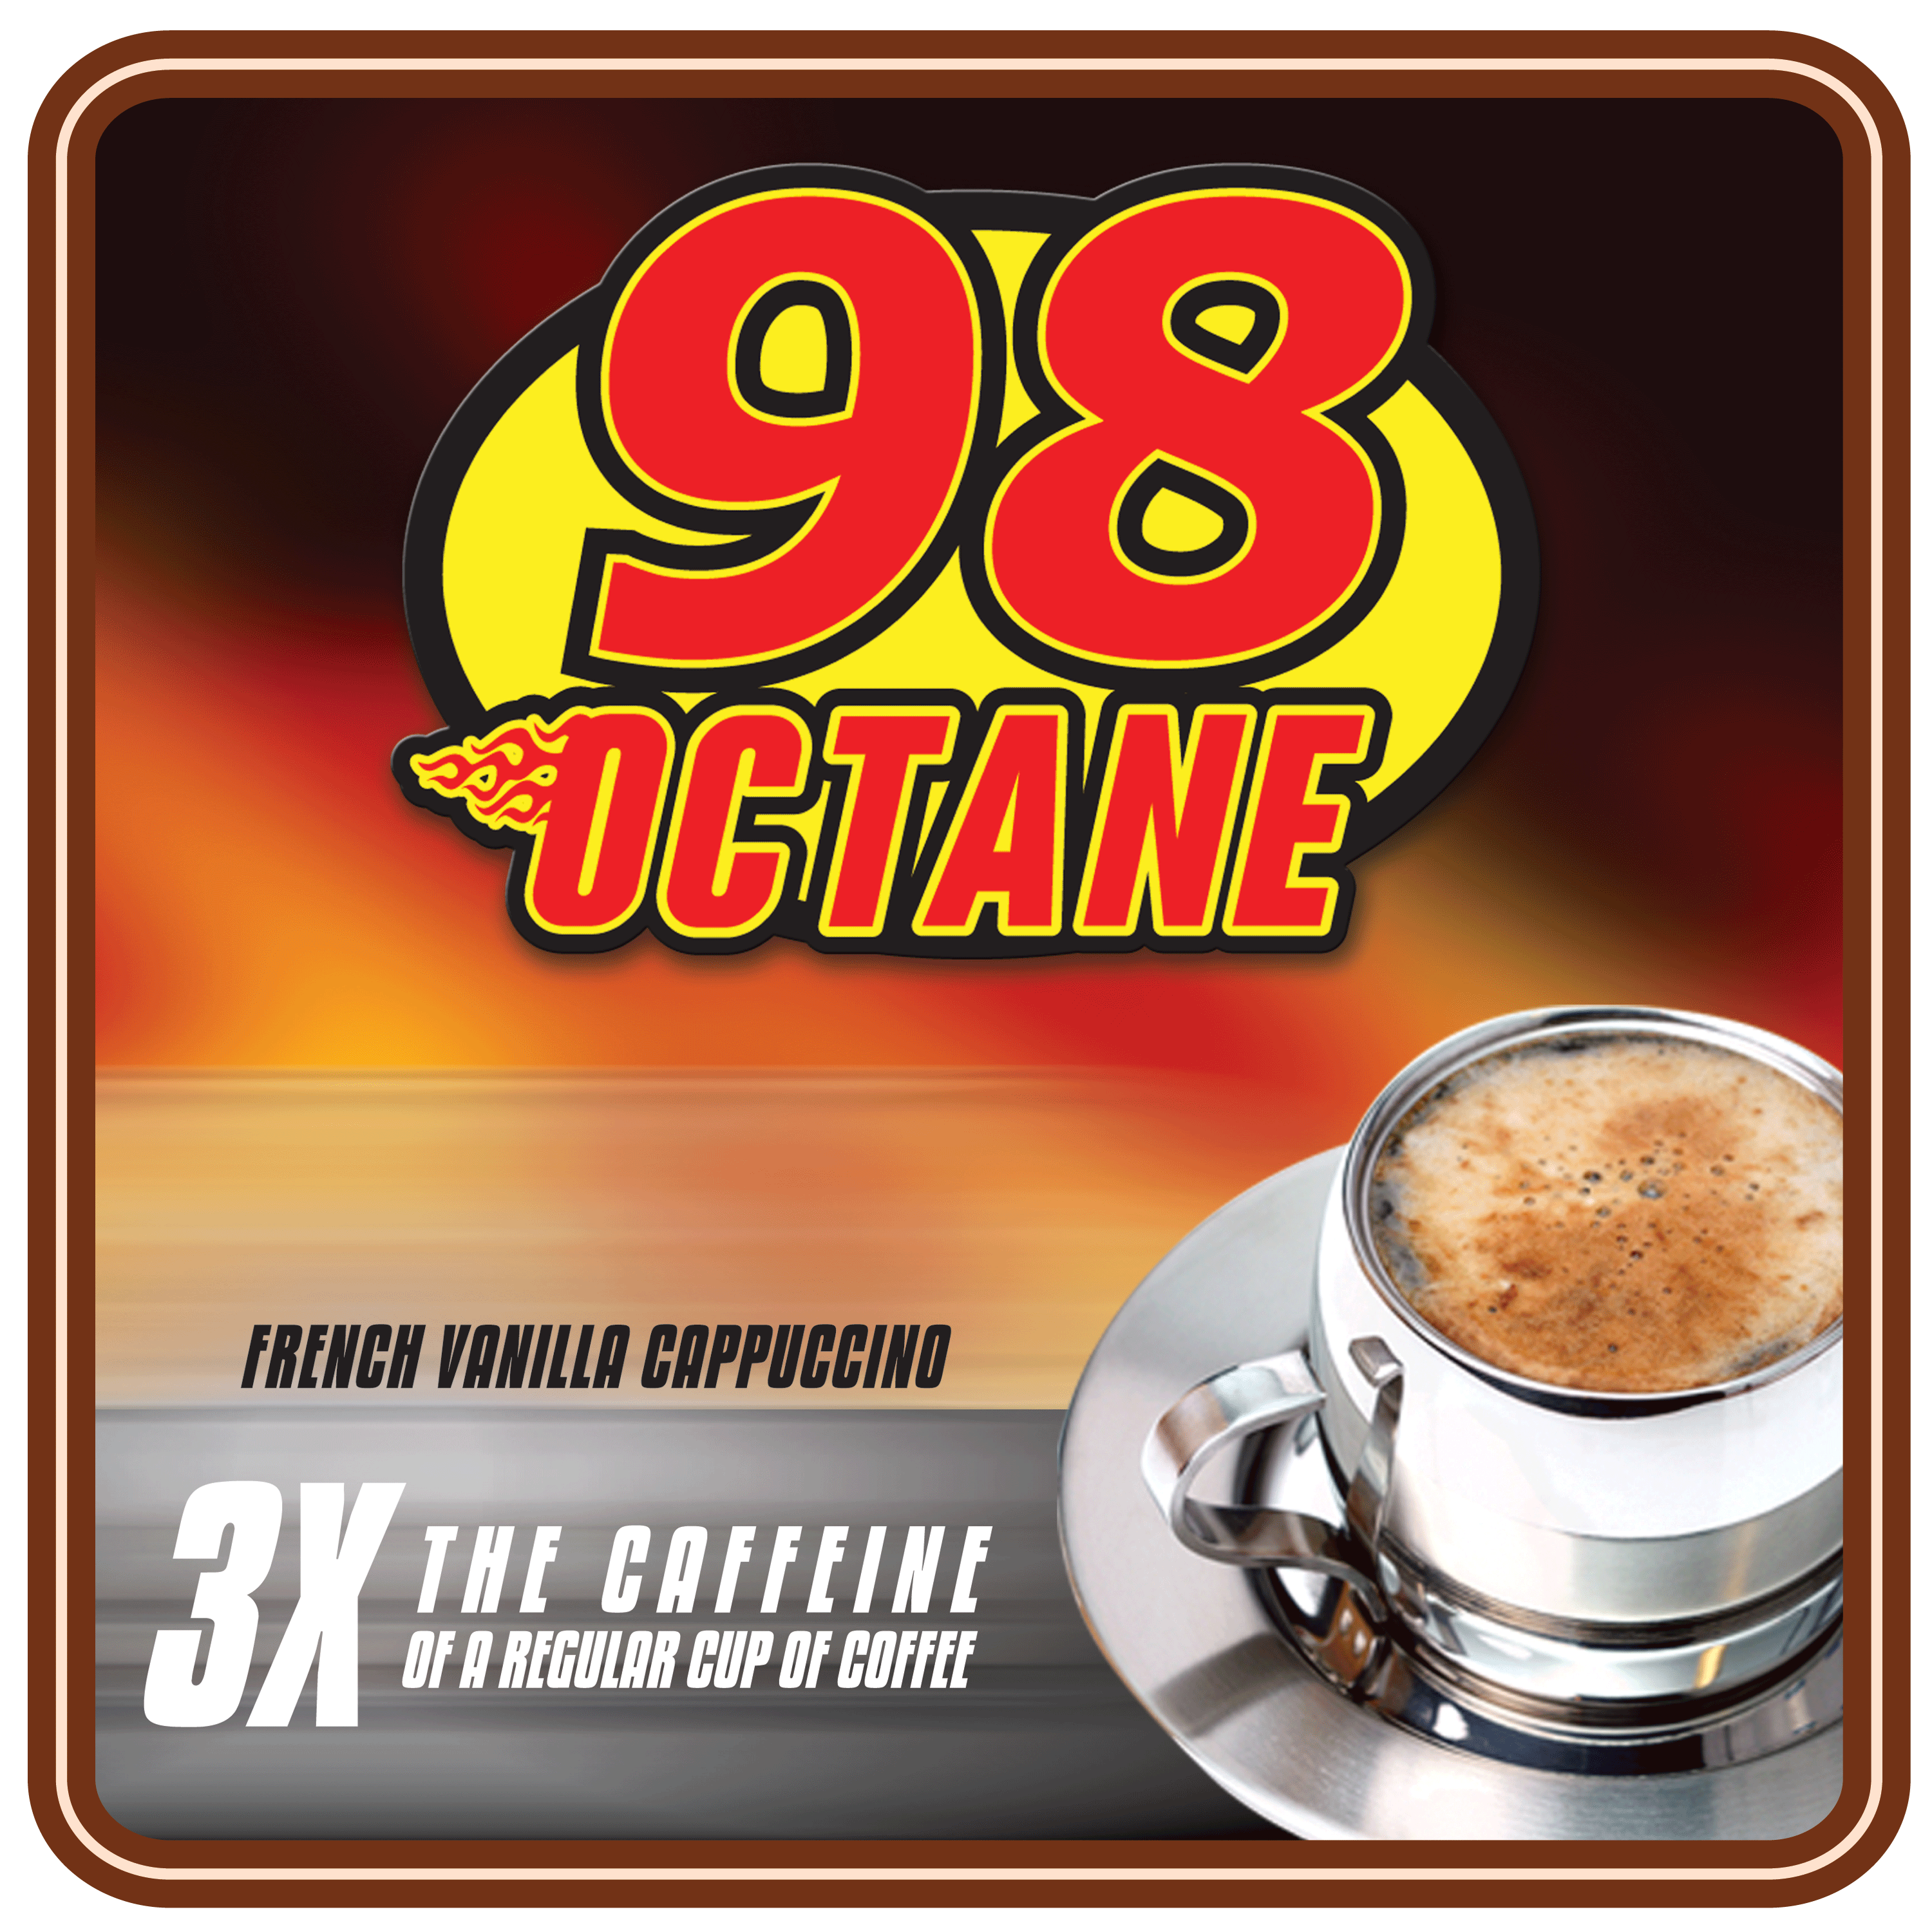 FRENCH VANILLA 98 OCTANE SALE